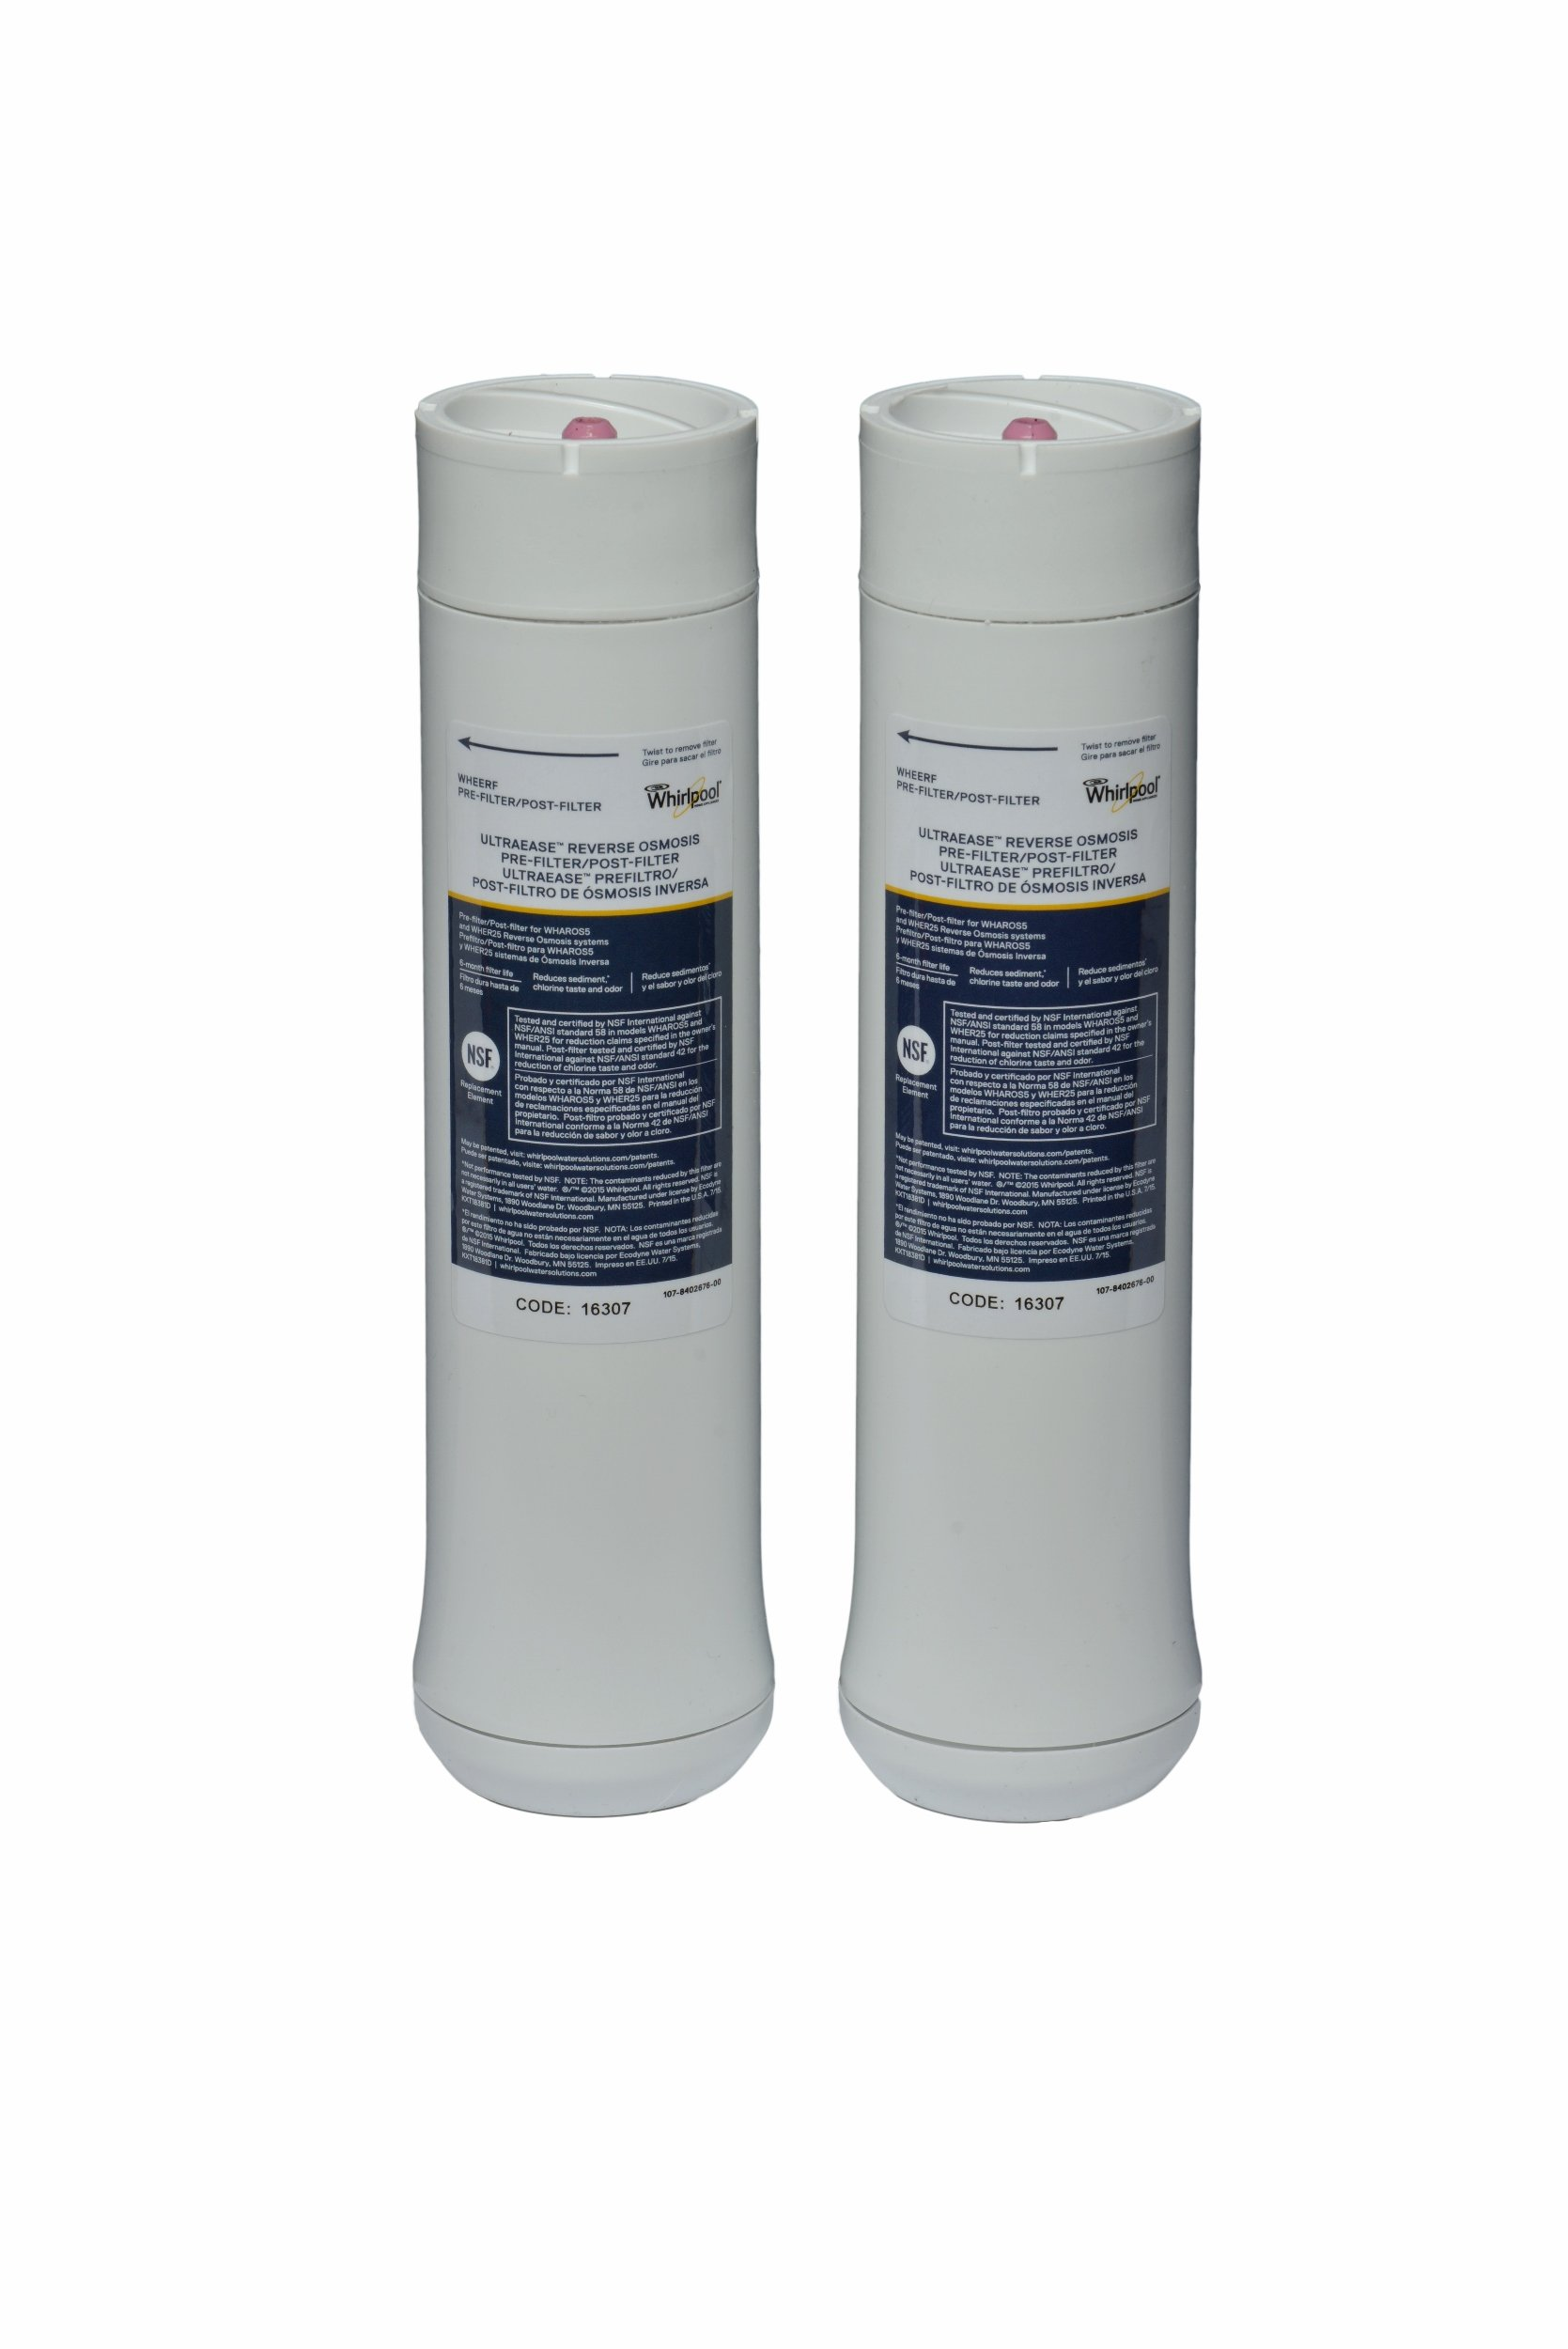 Whirlpool WHEERF Reverse Osmosis Replacement Pre/Post Water Filters (Fits Systems WHAROS5, WHAPSRO & WHER25) by Whirlpool